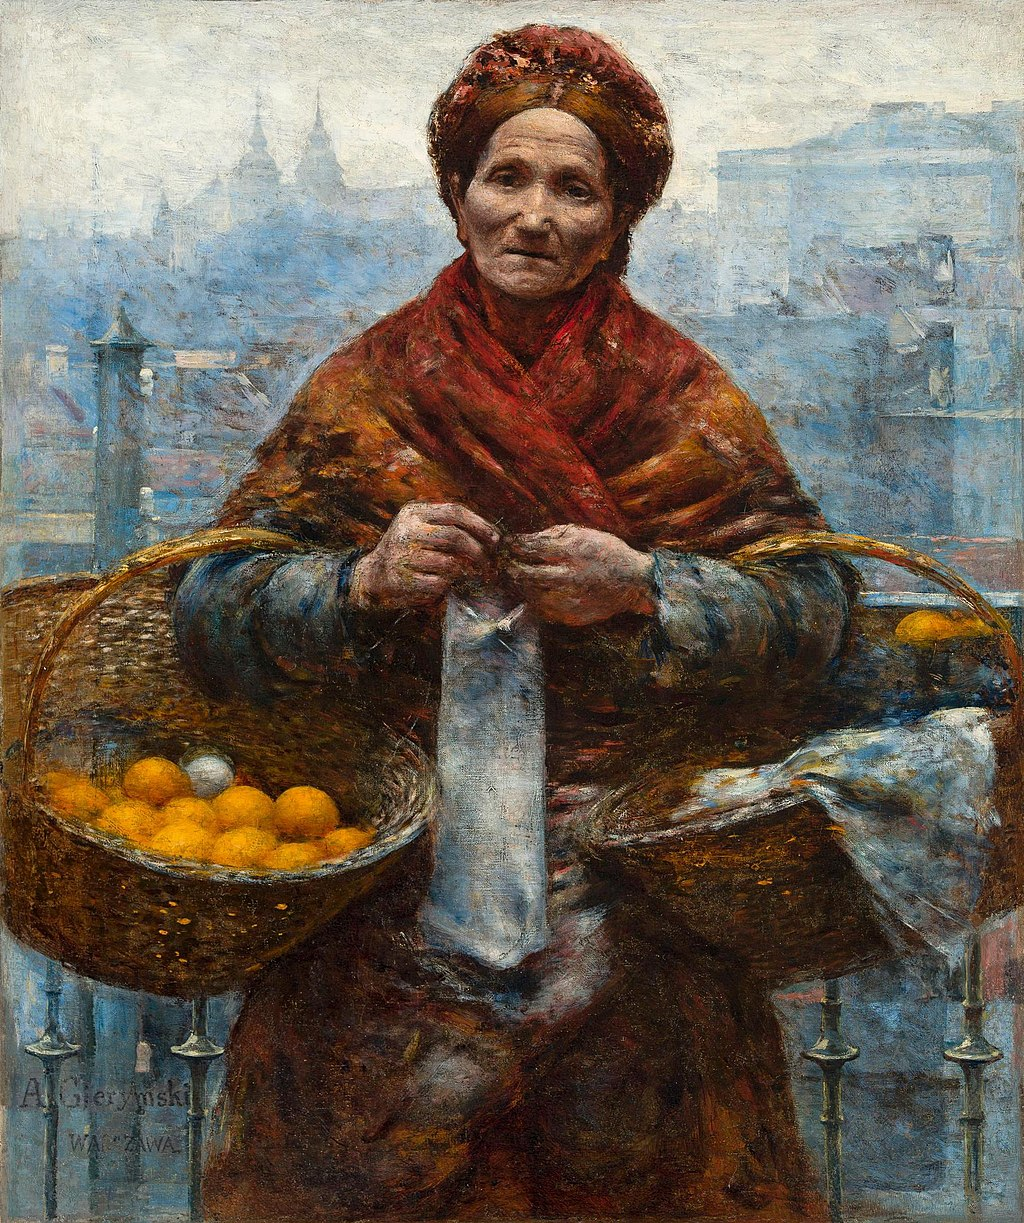 """Jewess with Oranges"" by Aleksander Gierymski"